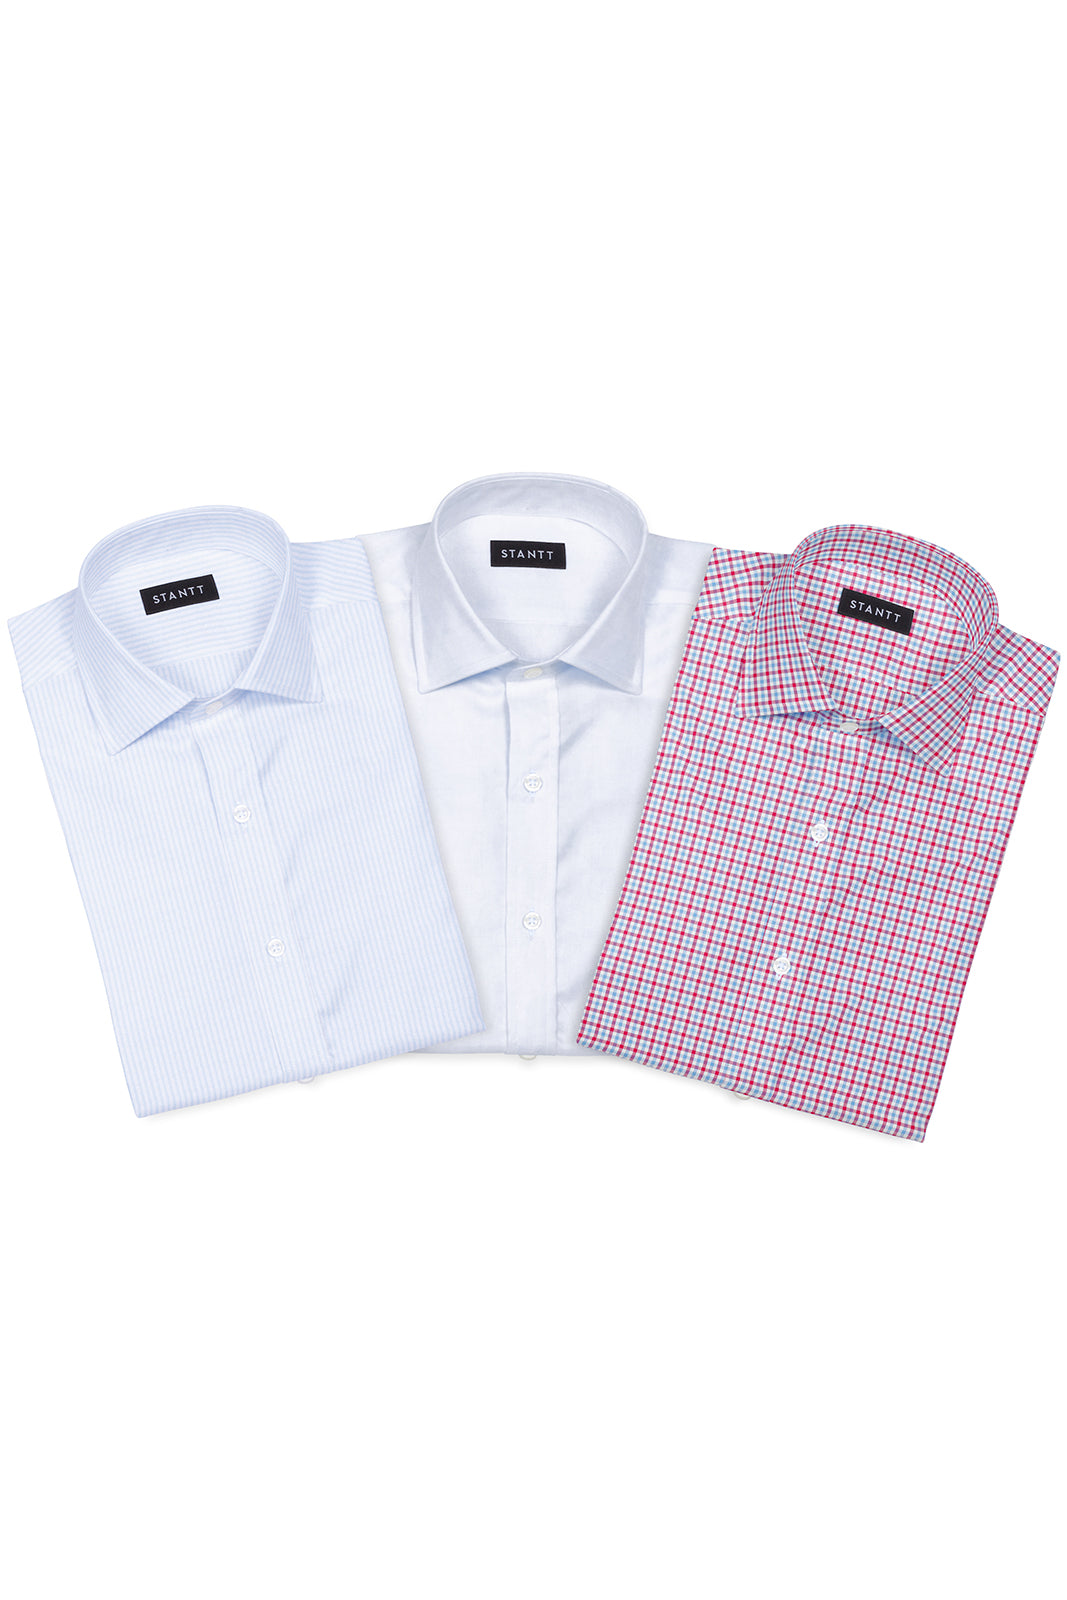 Summer Weekend Essentials Pack: Button-Down Collar, Barrel Cuff